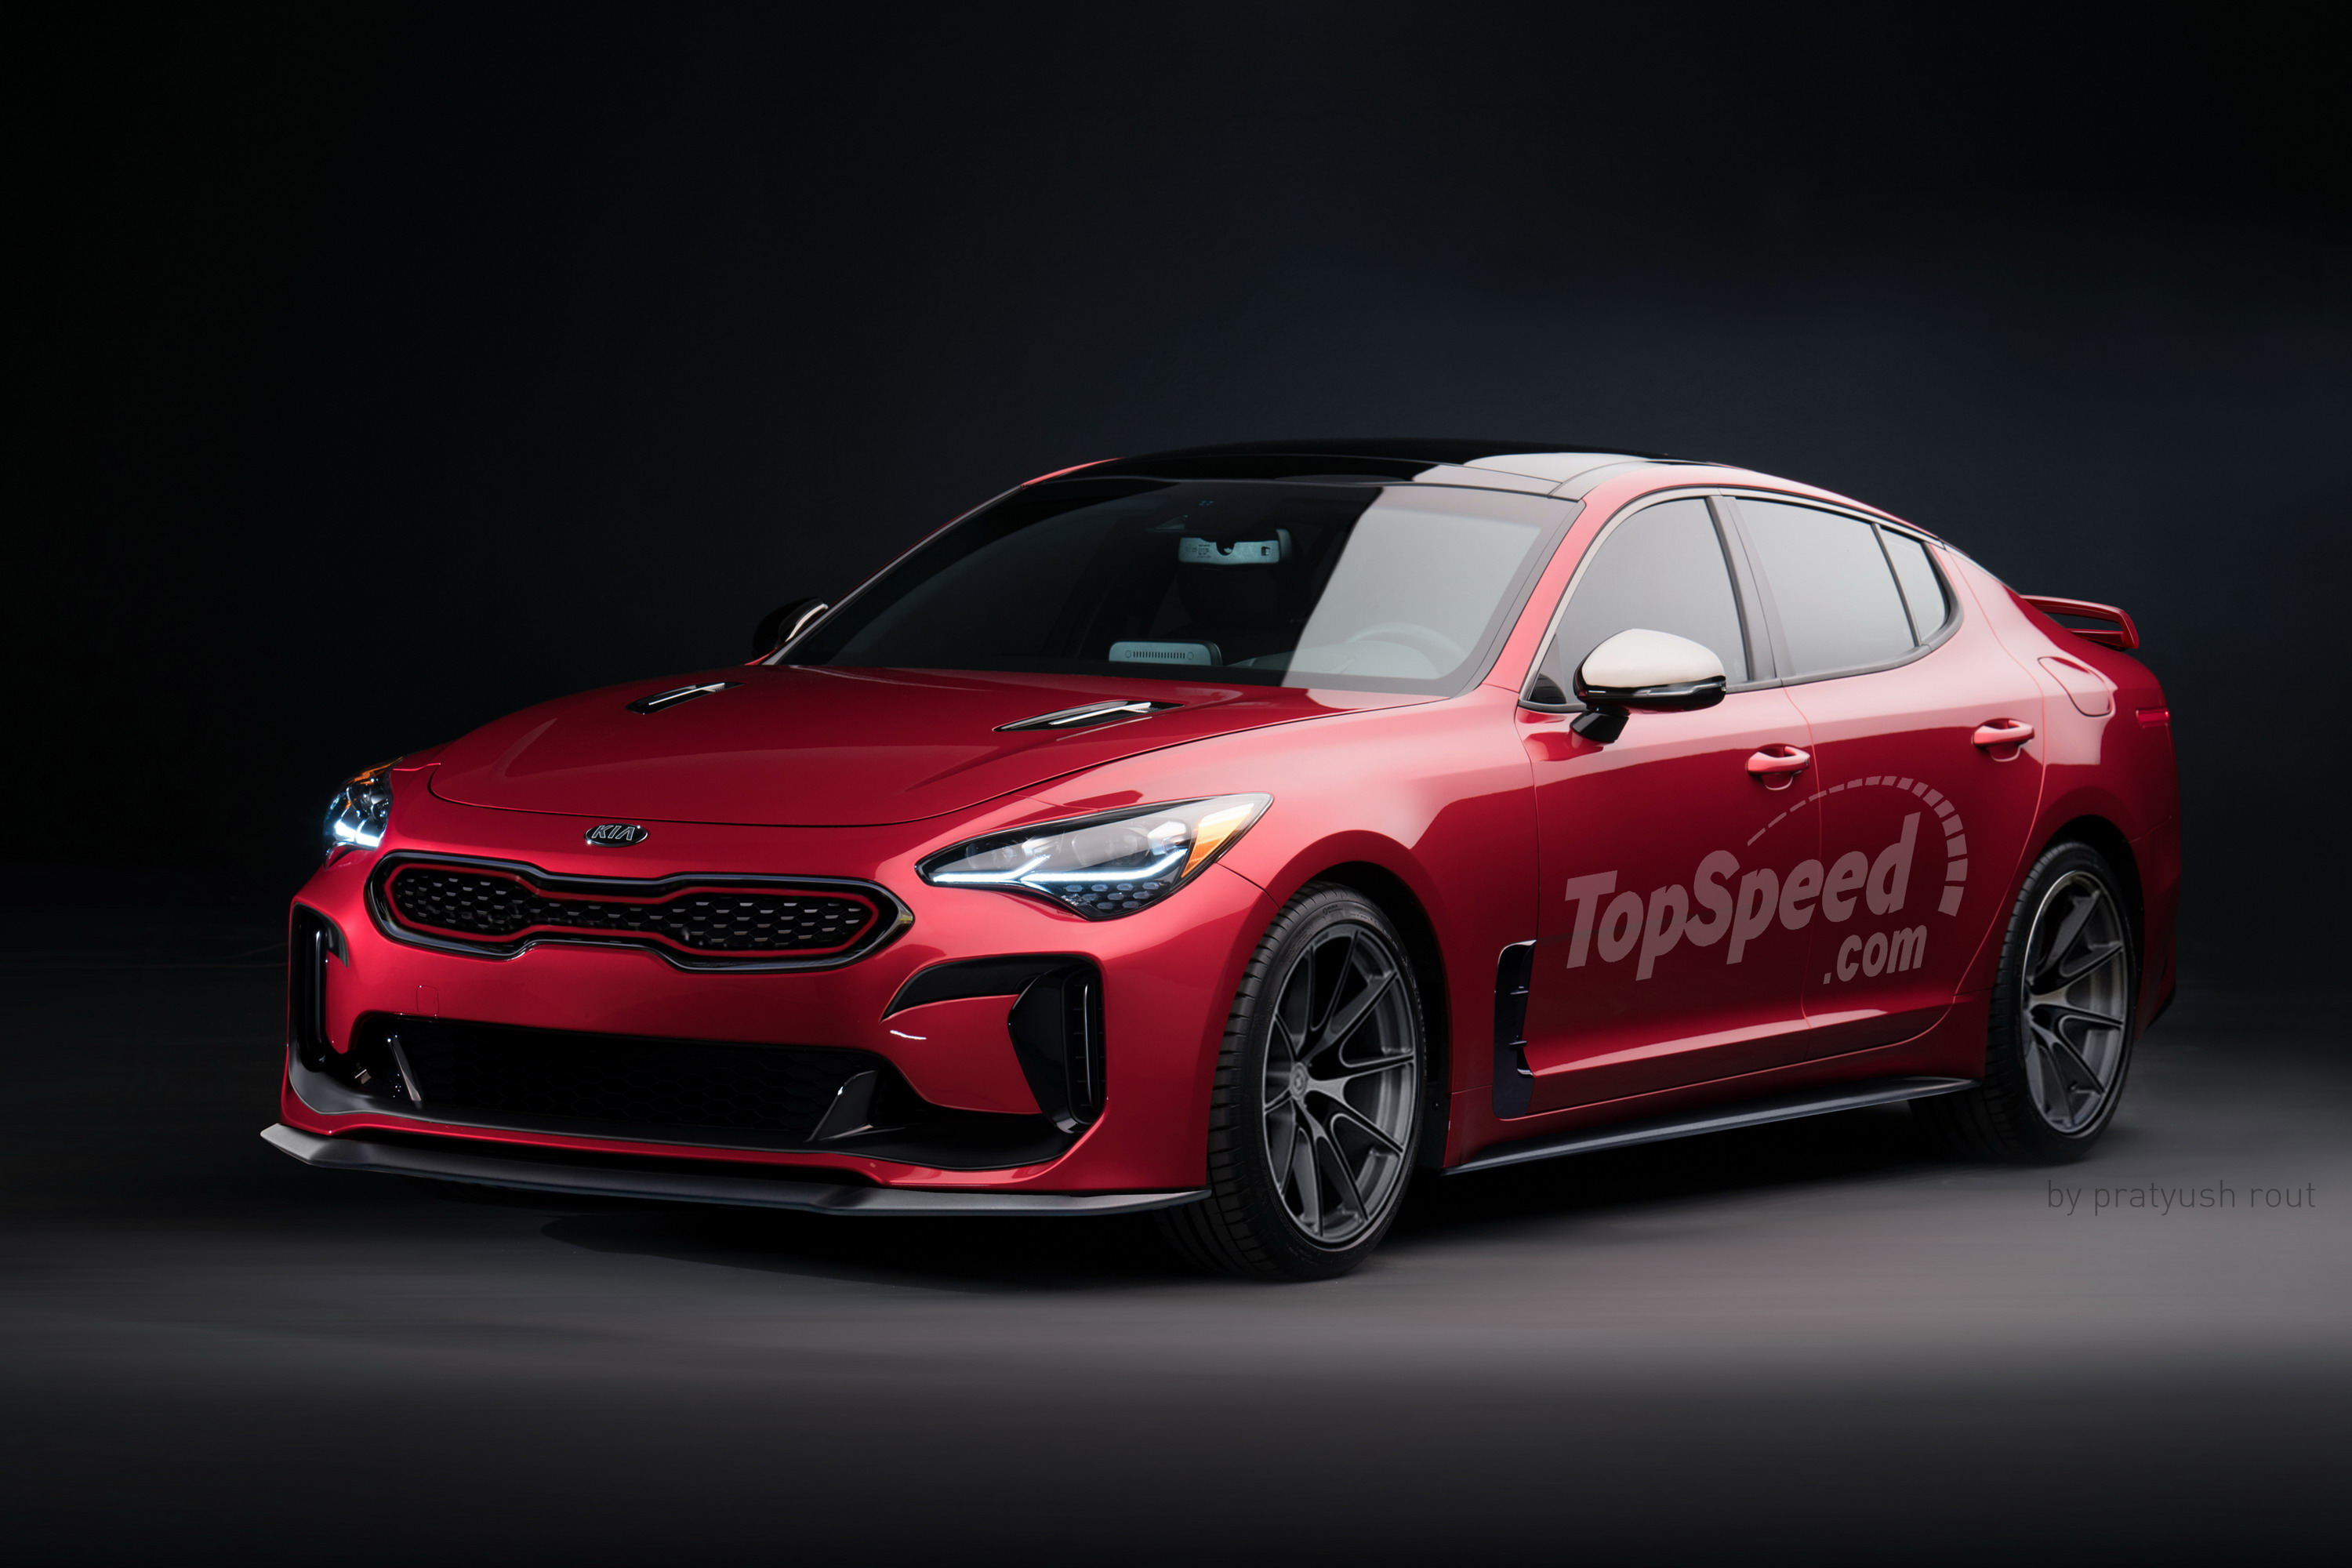 2019 Kia Stinger Gt Plus Top Speed